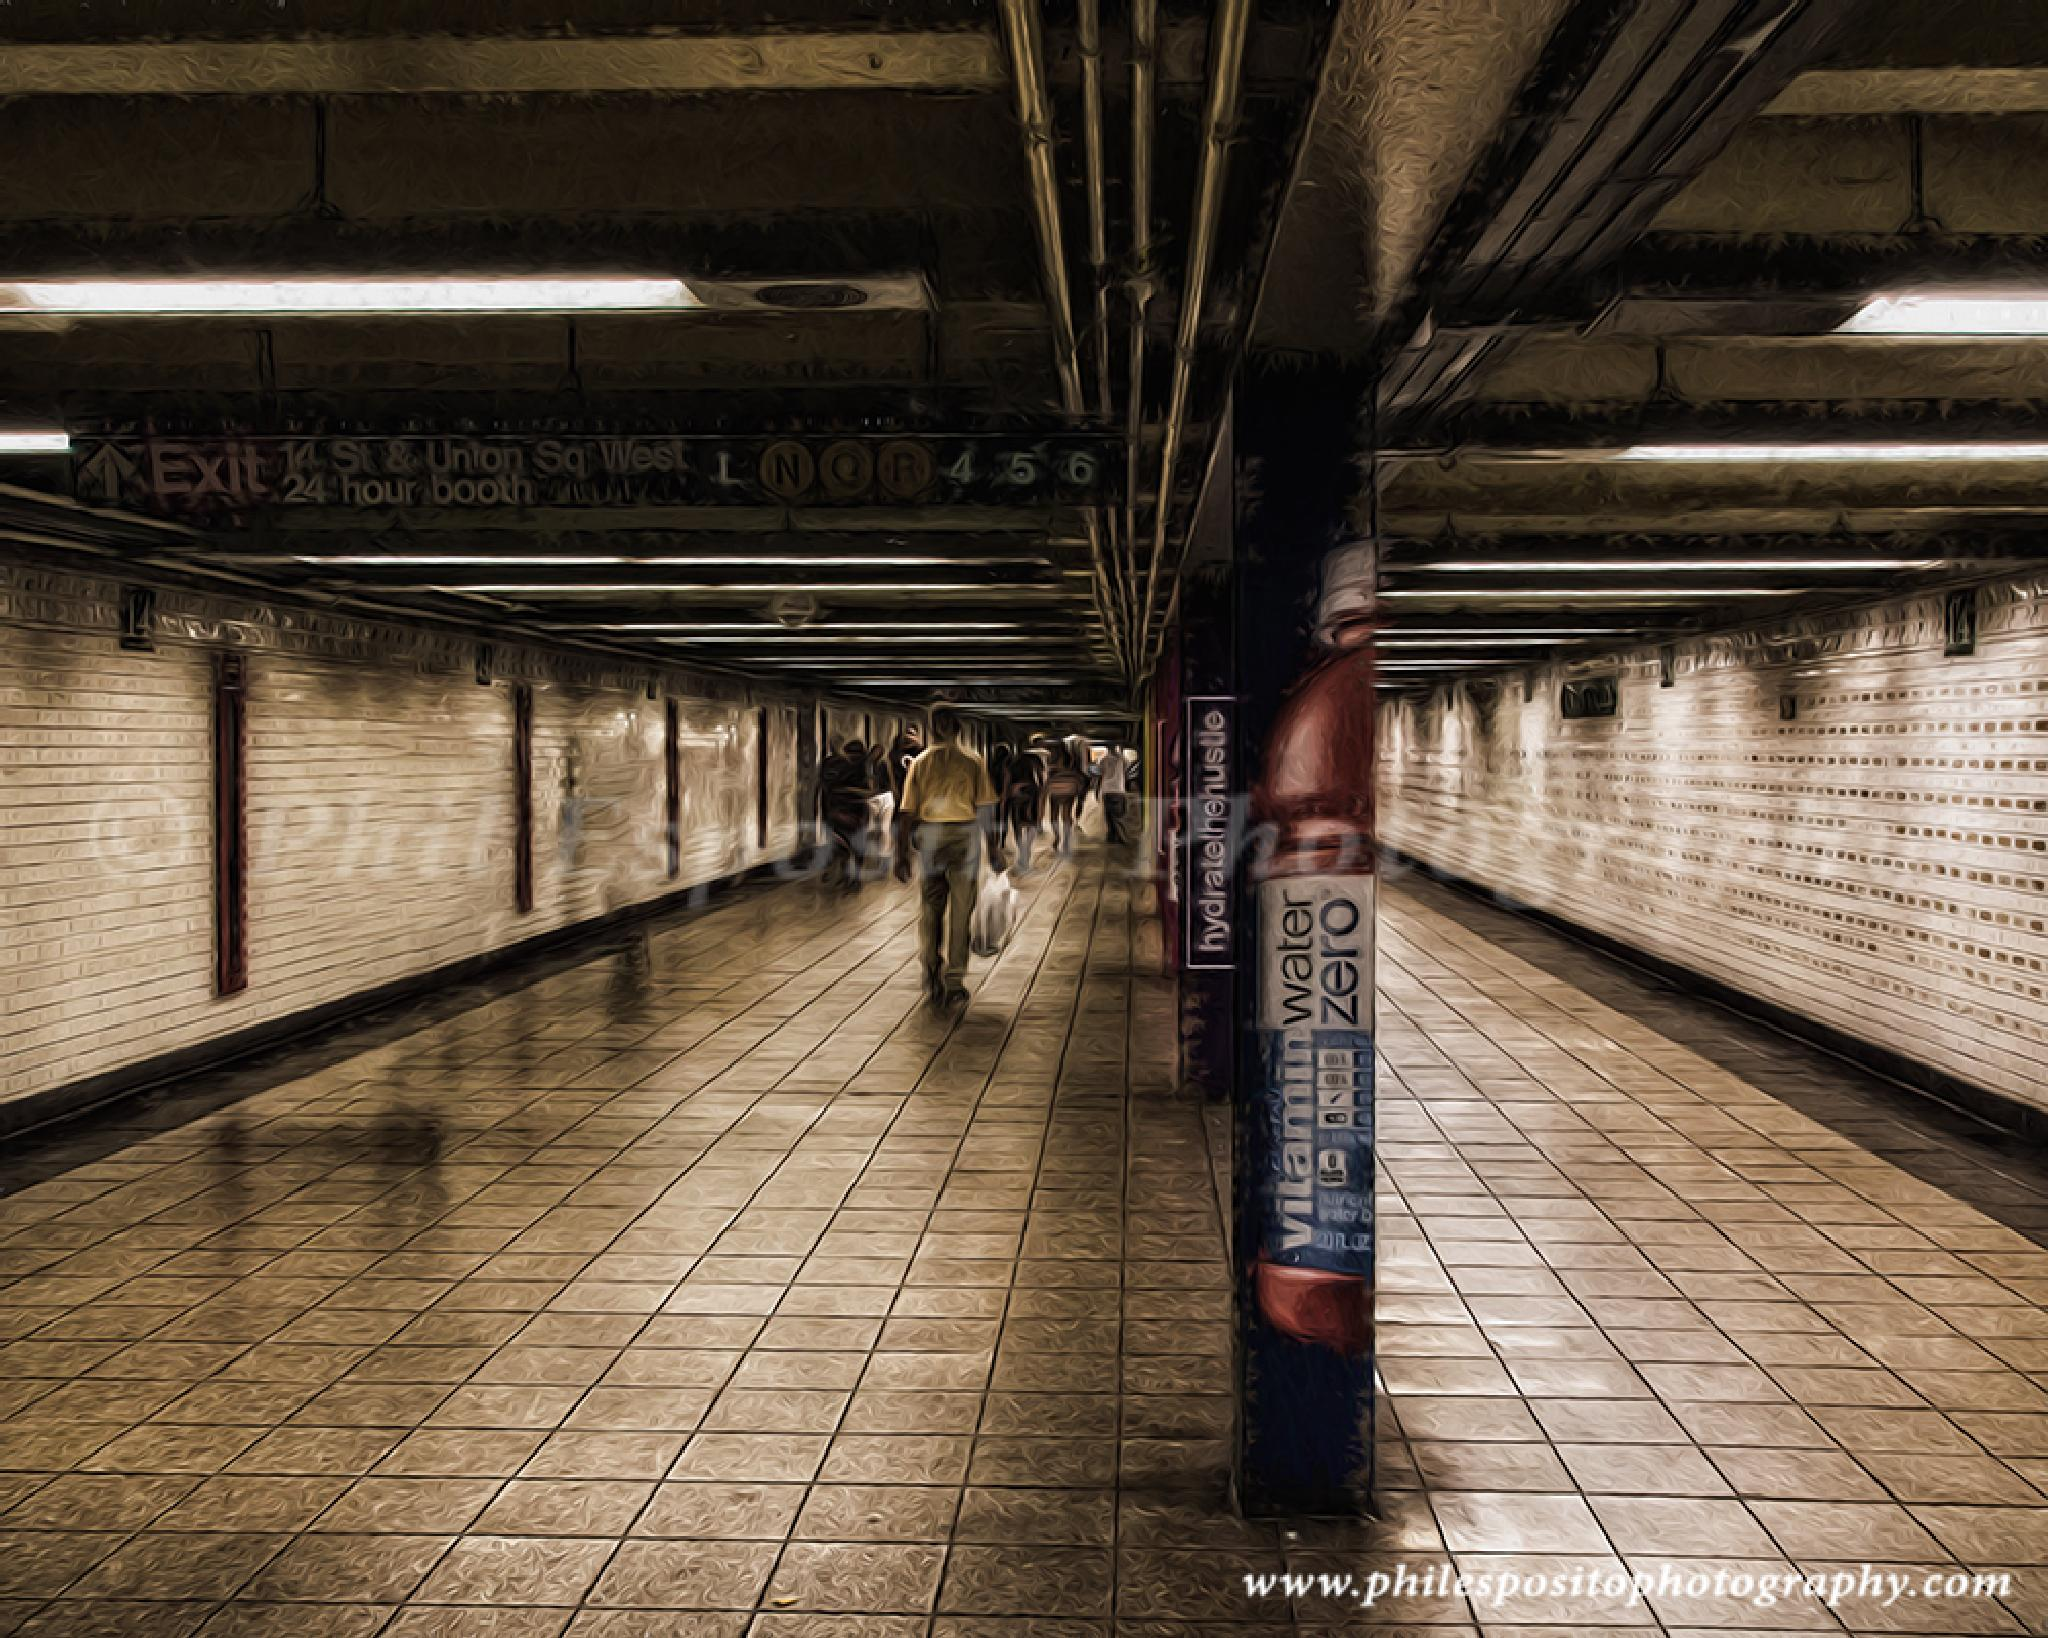 14 st station in color by Phil Esposito